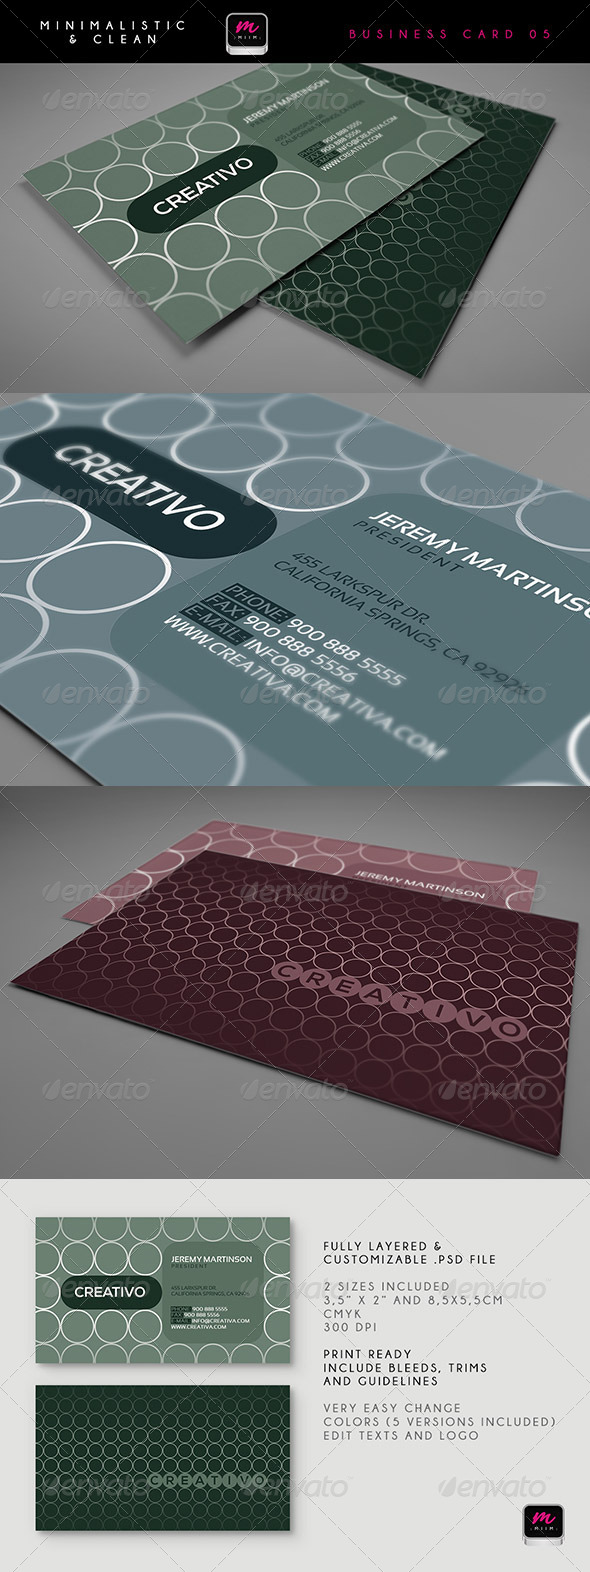 Clean Business Card Template 01 - Creative Business Cards